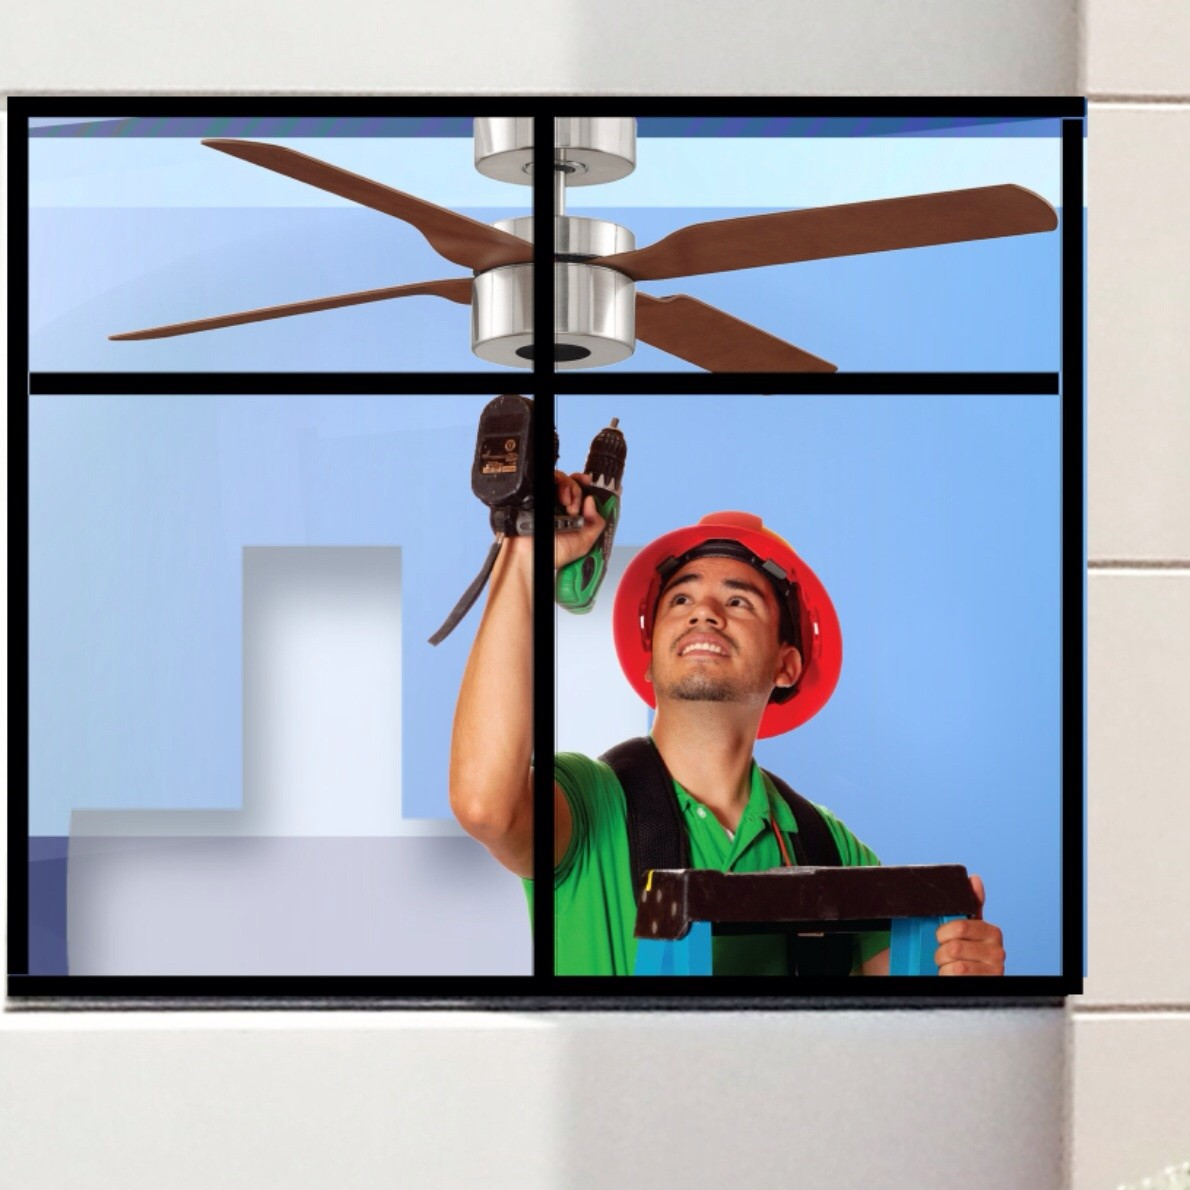 Electricians in NV North Las Vegas 89030 Decor Electric LLC 570 W Cheyenne Ave Ste 40  (702)551-3220